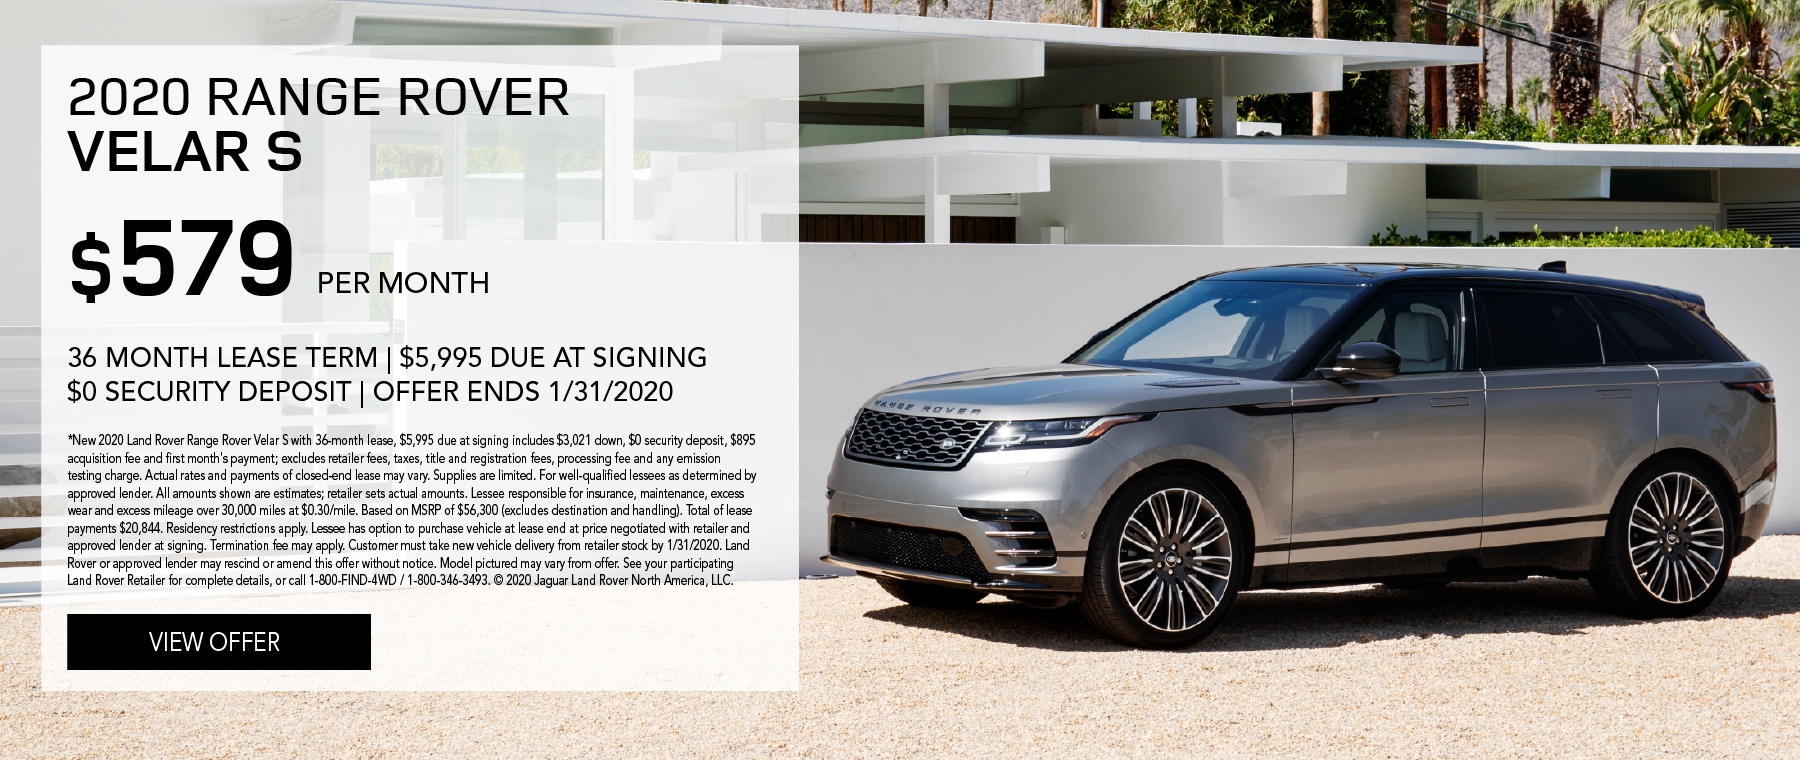 2020 Range Rover Velar S | $579/month | 36-month lease | 10,000 miles/year | $5,995 due at signing | $0 security deposit | expires 1/31/2020